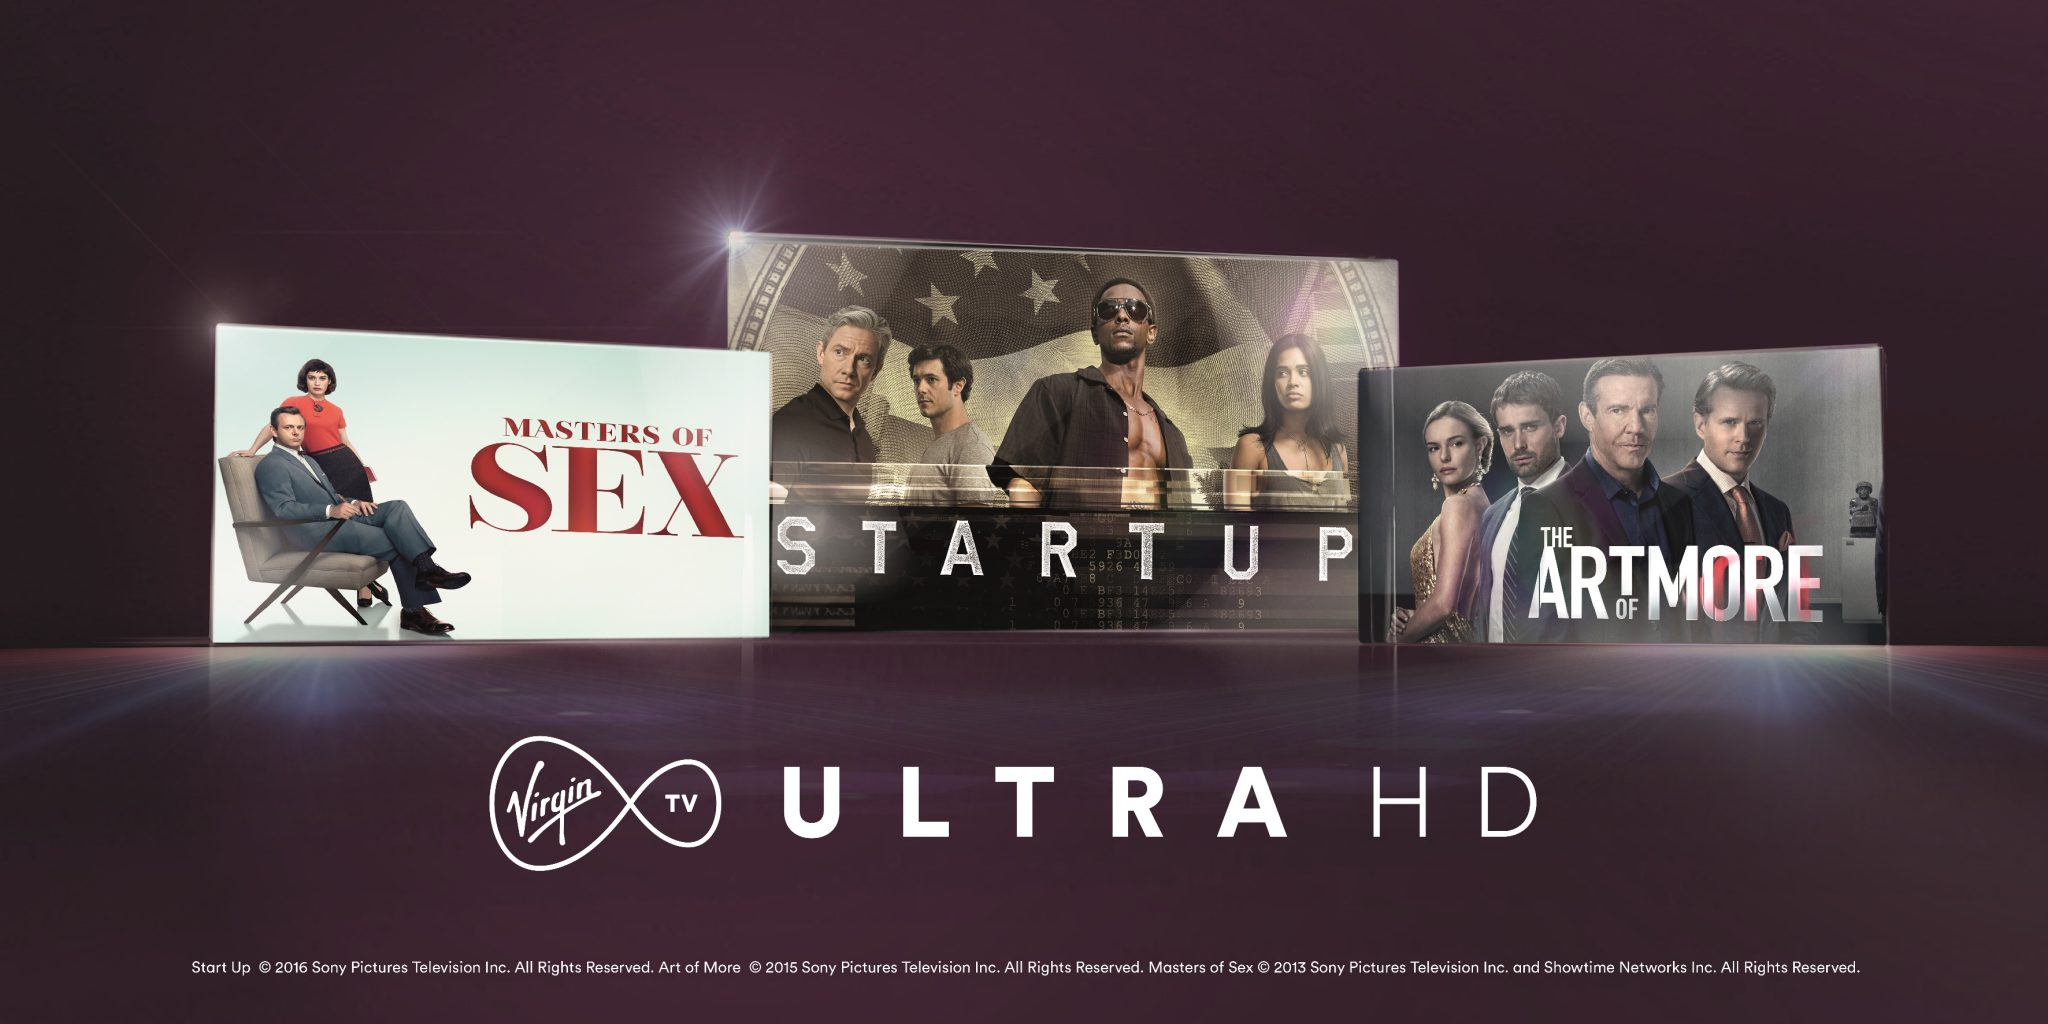 Virgin Media launches dedicated 4K channel